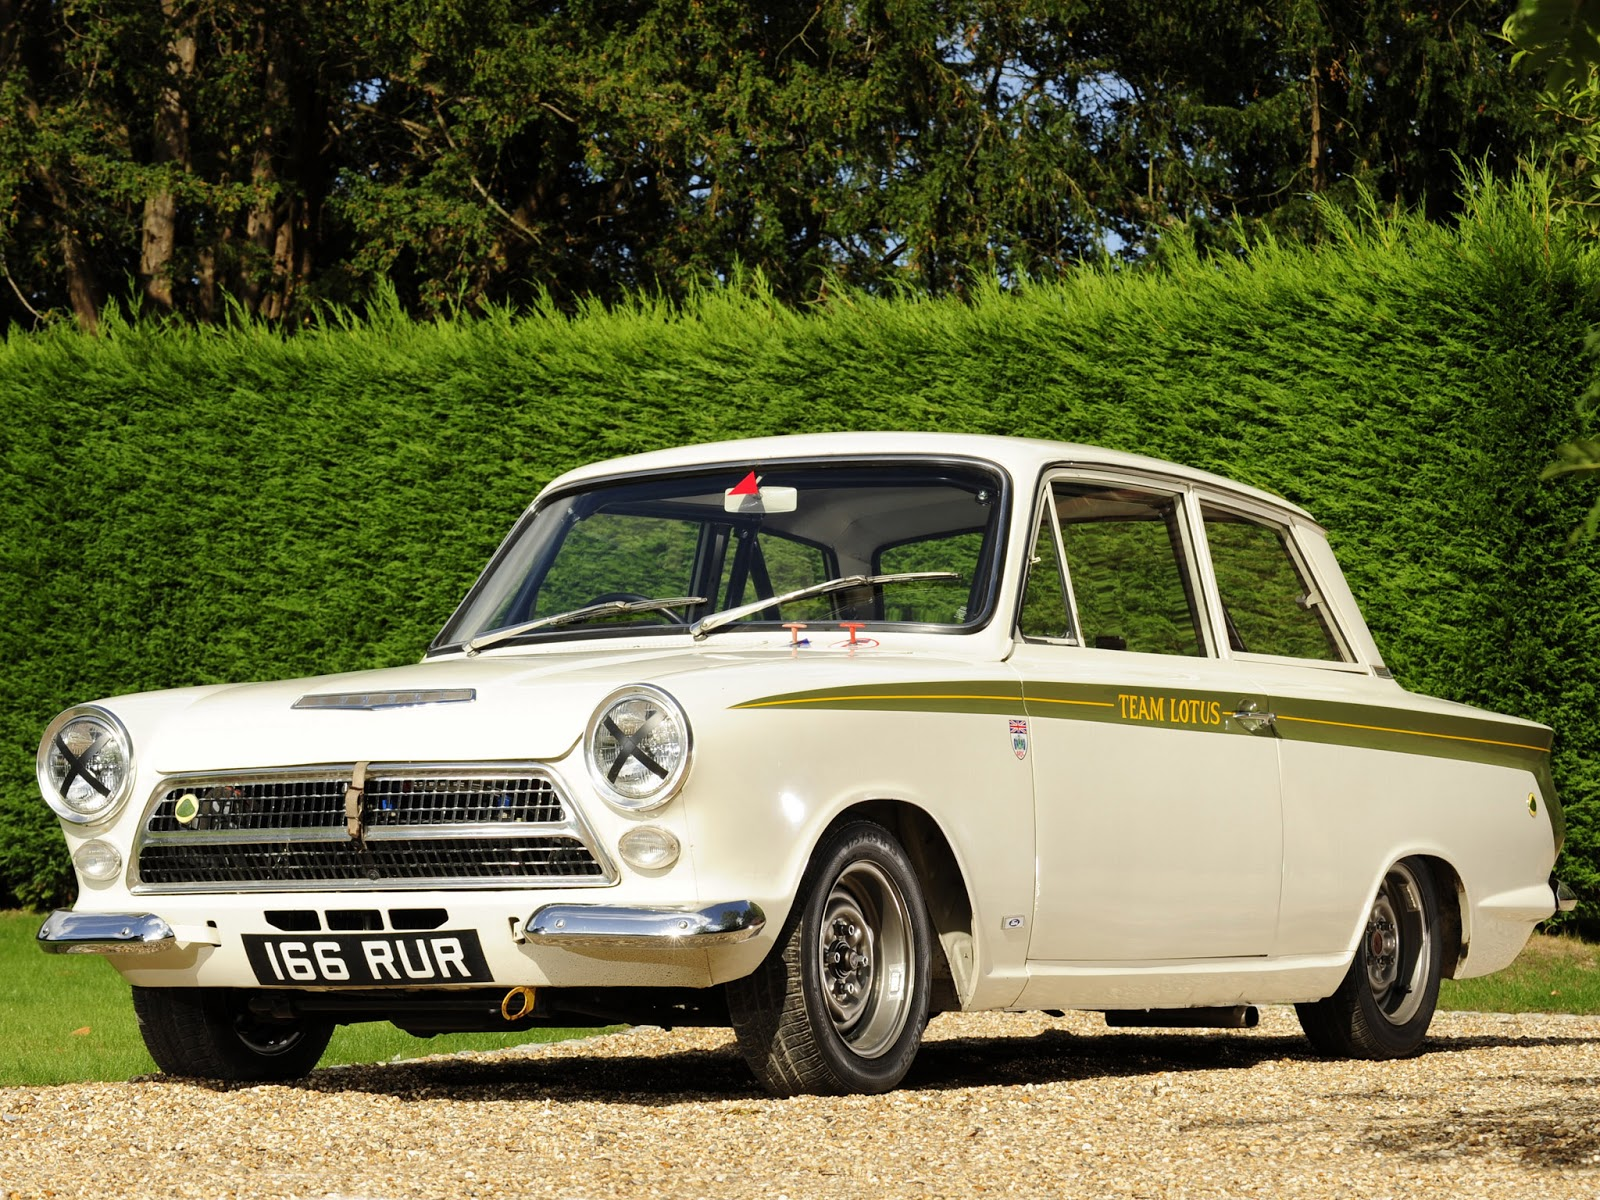 The lotus cortina had by this time earned an awesome competition reputation wikipedia